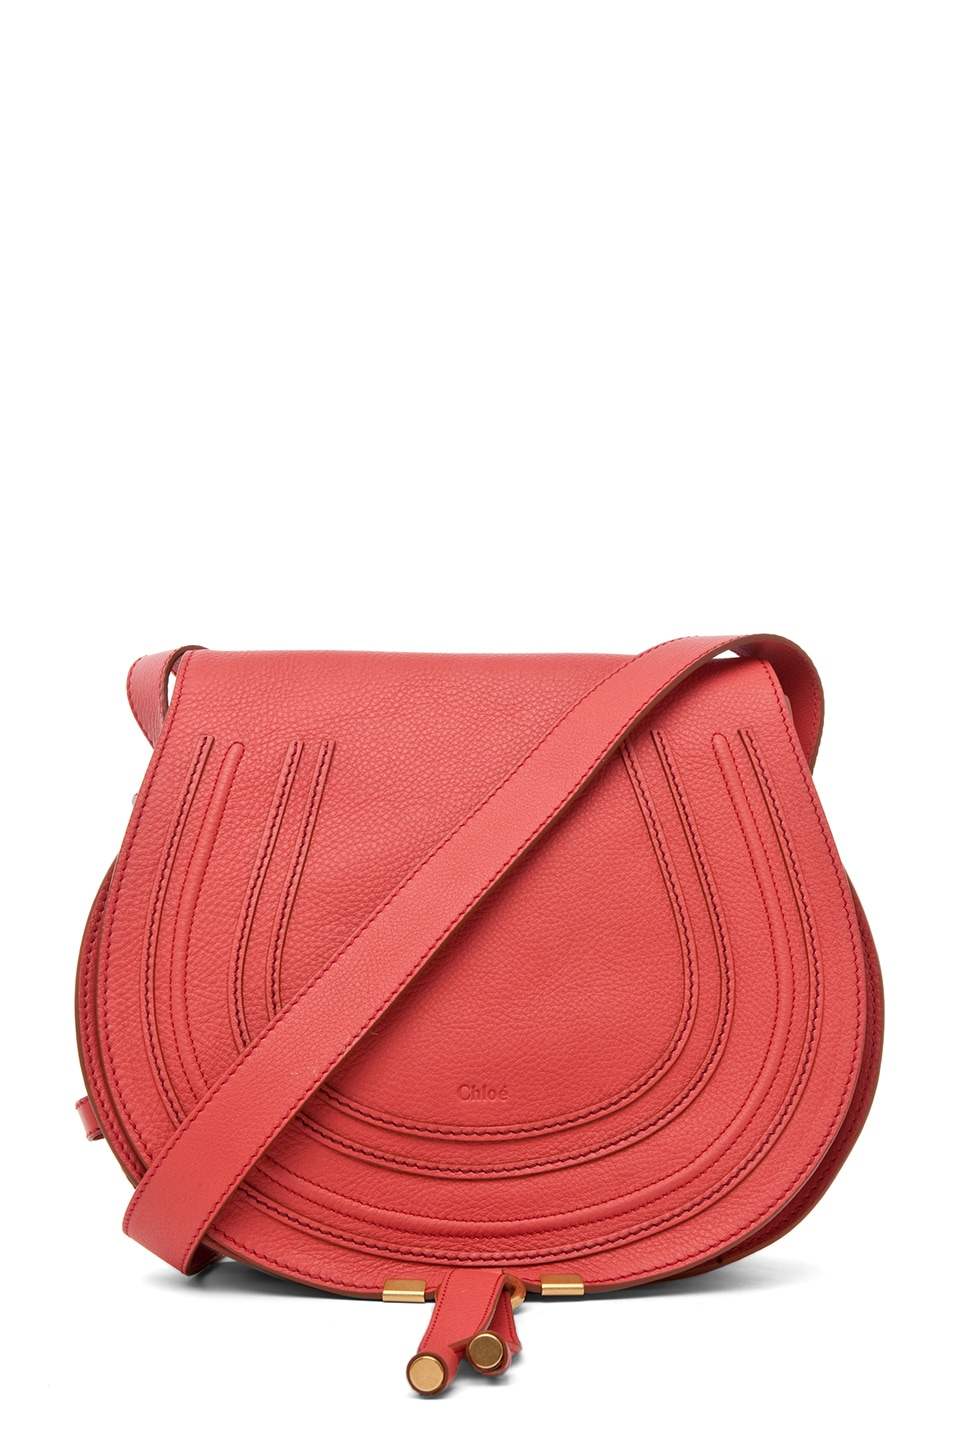 Image 1 of Chloe PINK PARTY EXCLUSIVE Medium Marcie Satchel in Paradise Pink